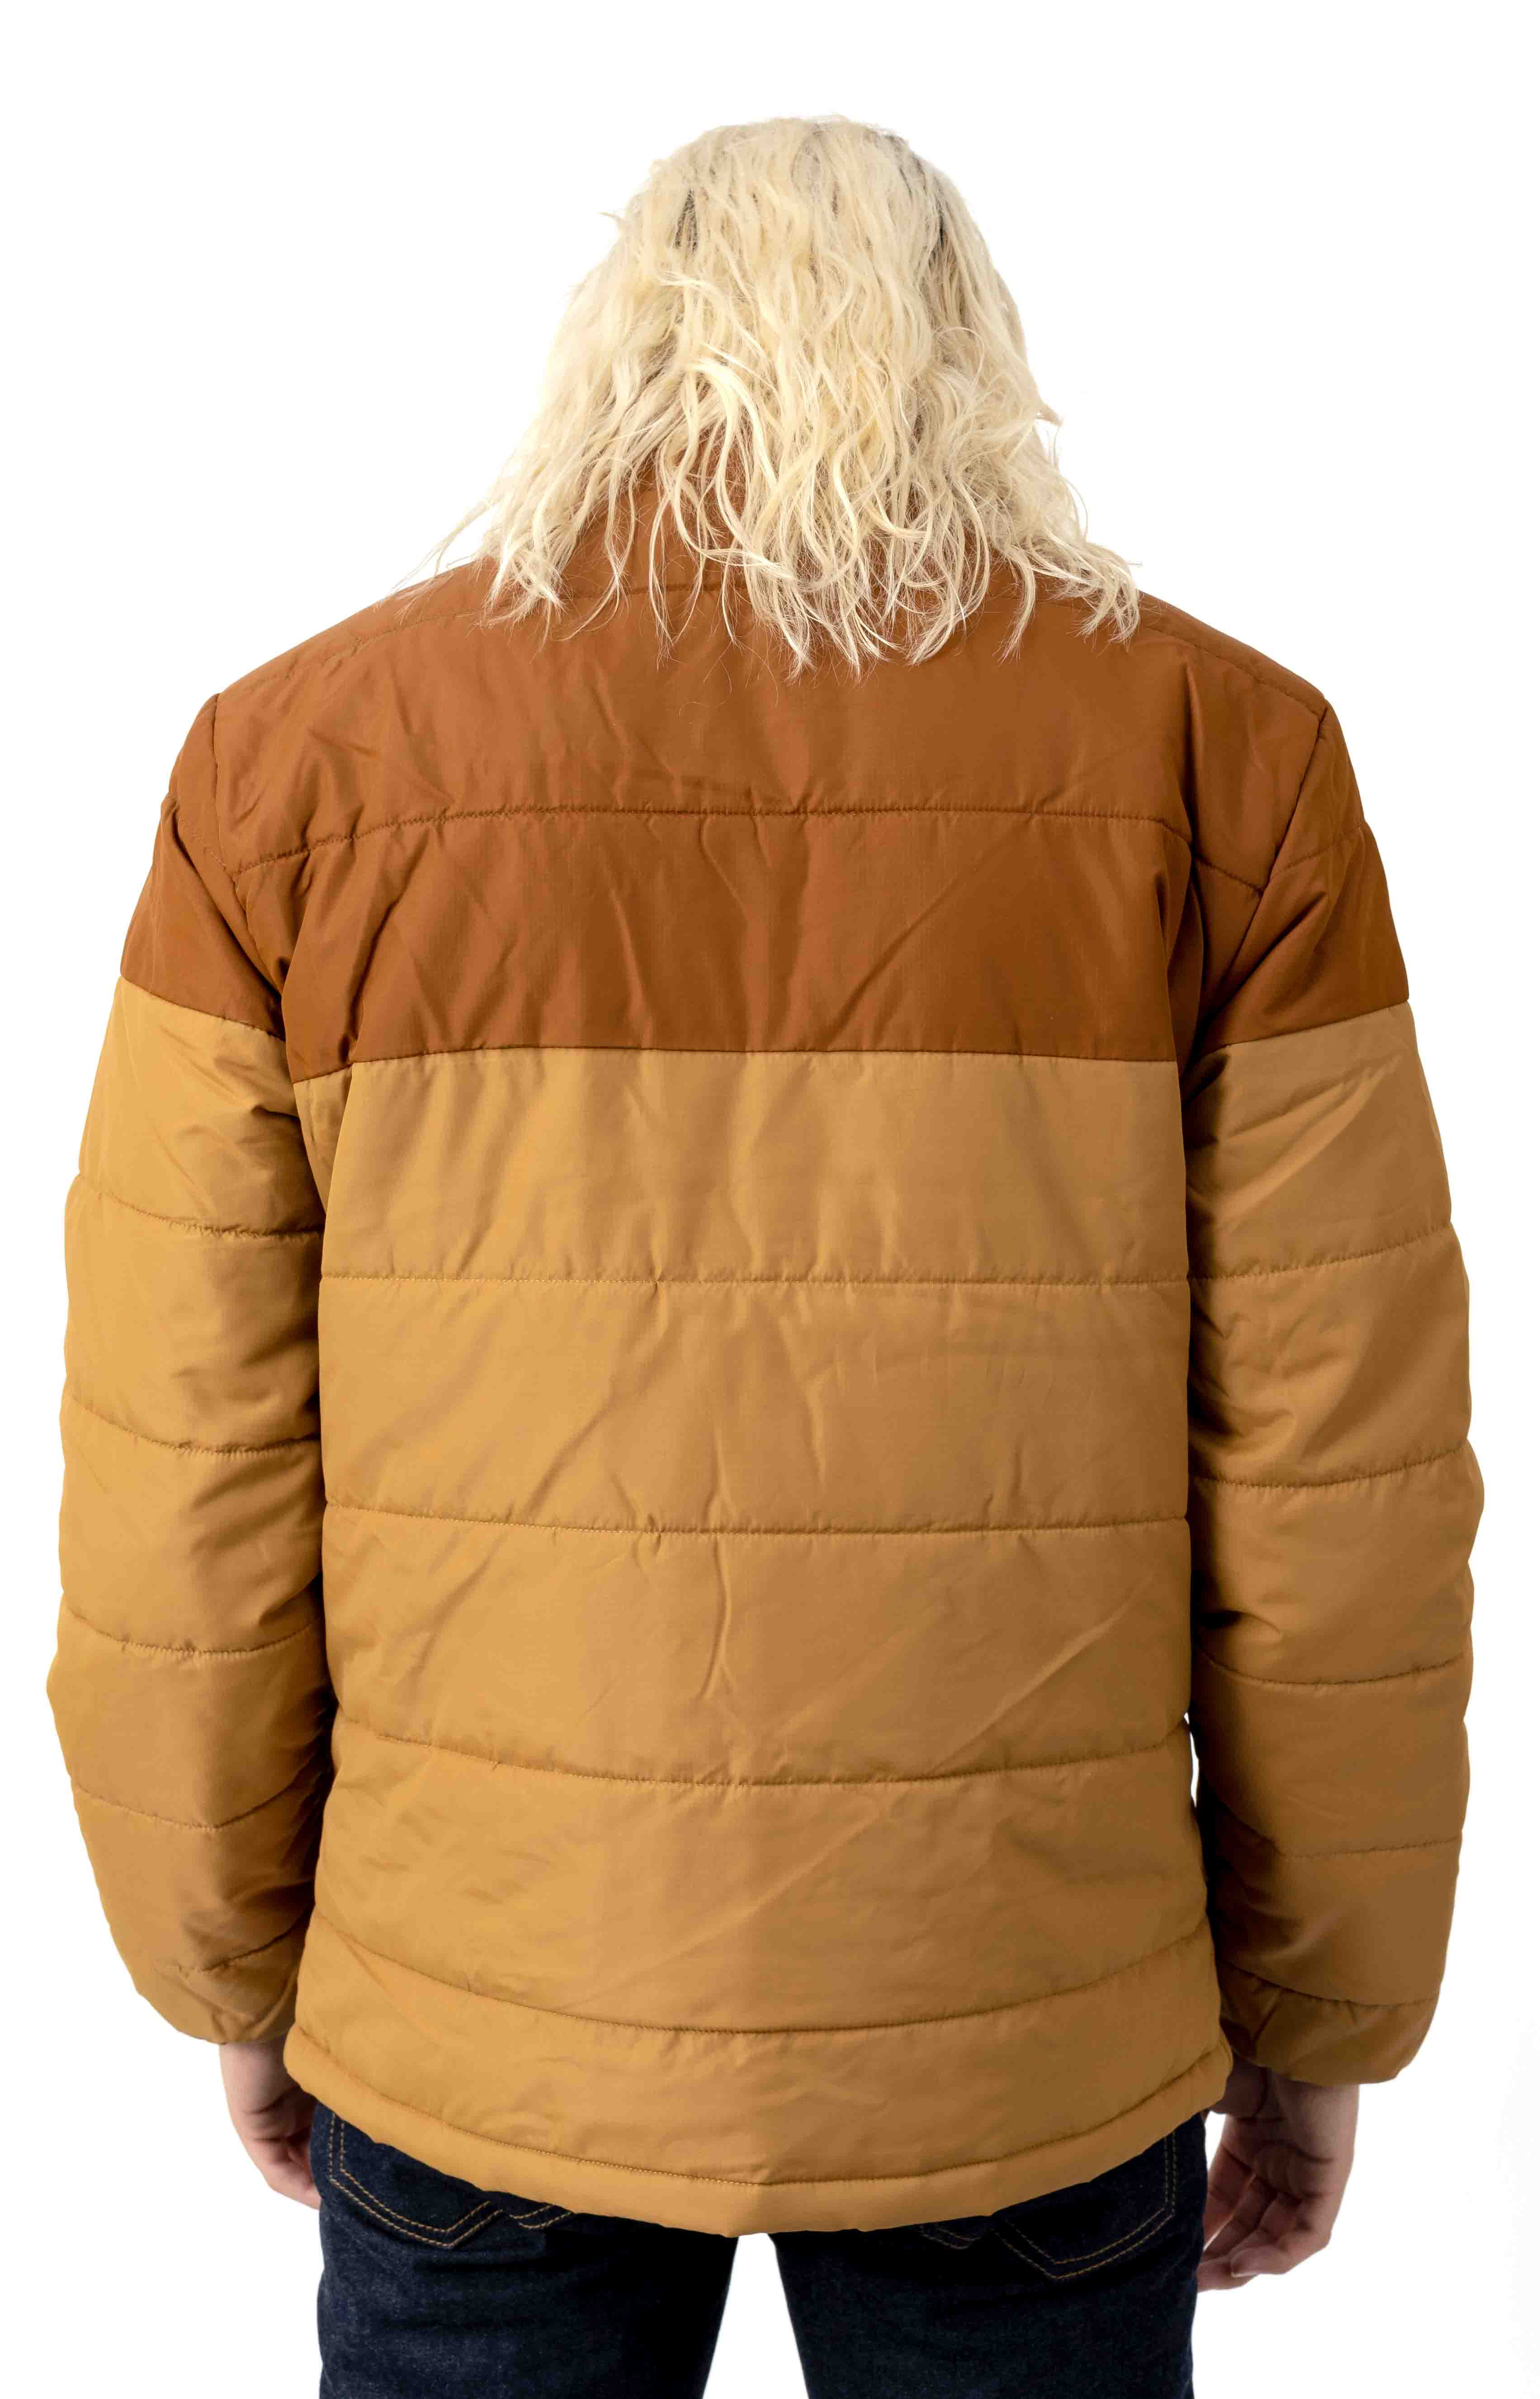 Cass Puffer Jacket - Cooper/Washed Cooper 3